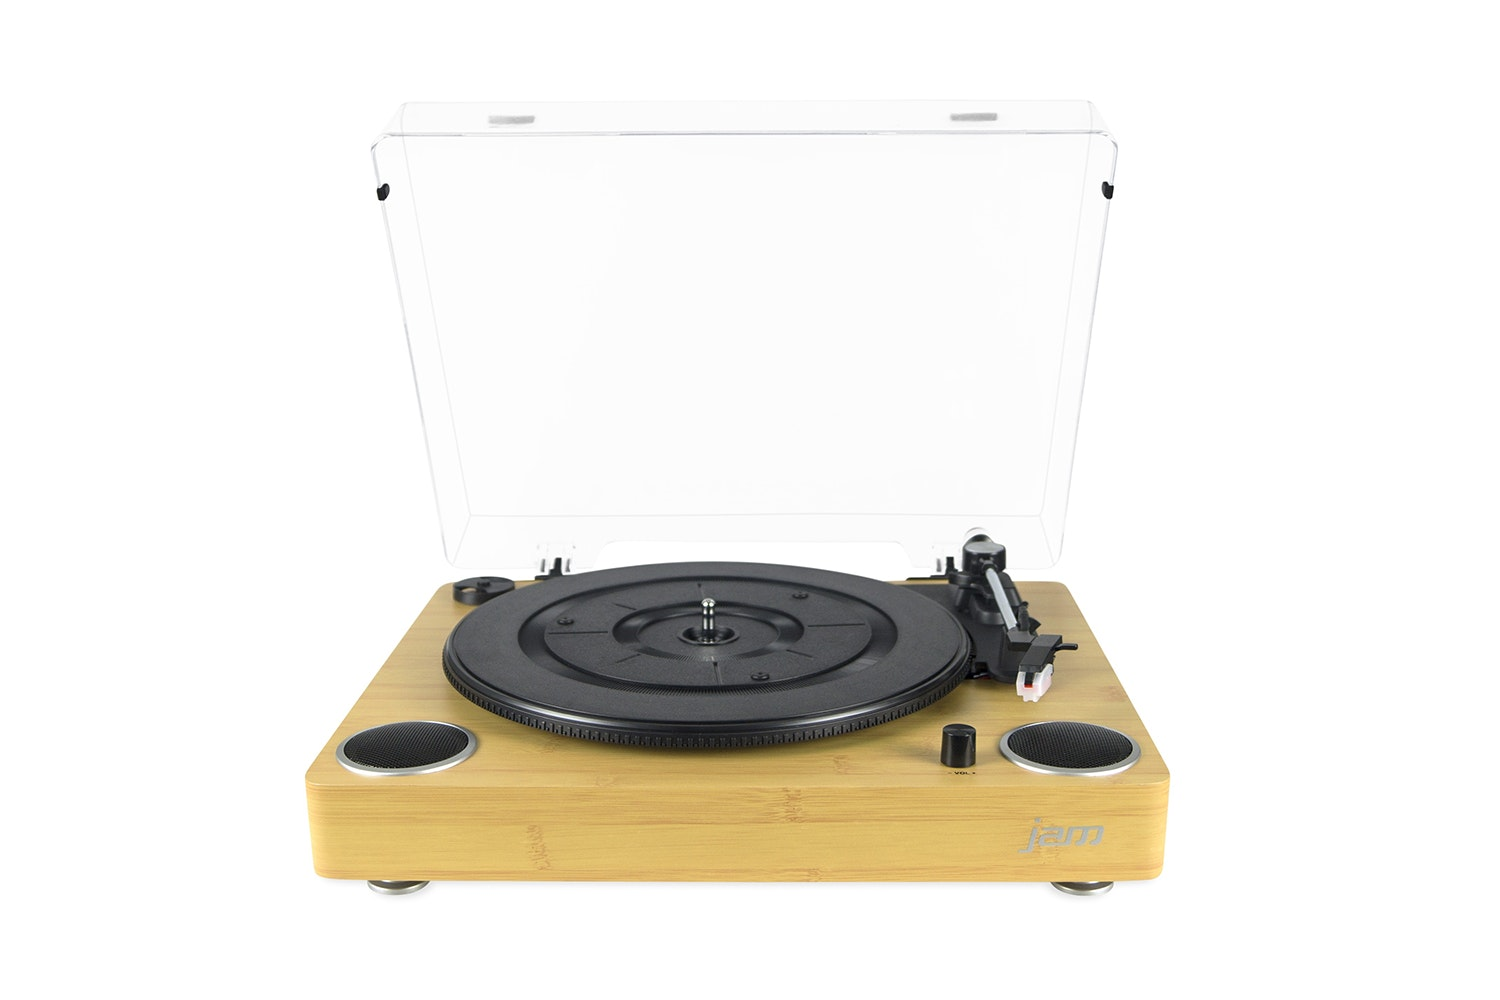 Jam Sound Turntable Built In Speakers Vinyl Record | HX-TTP200WD-GB